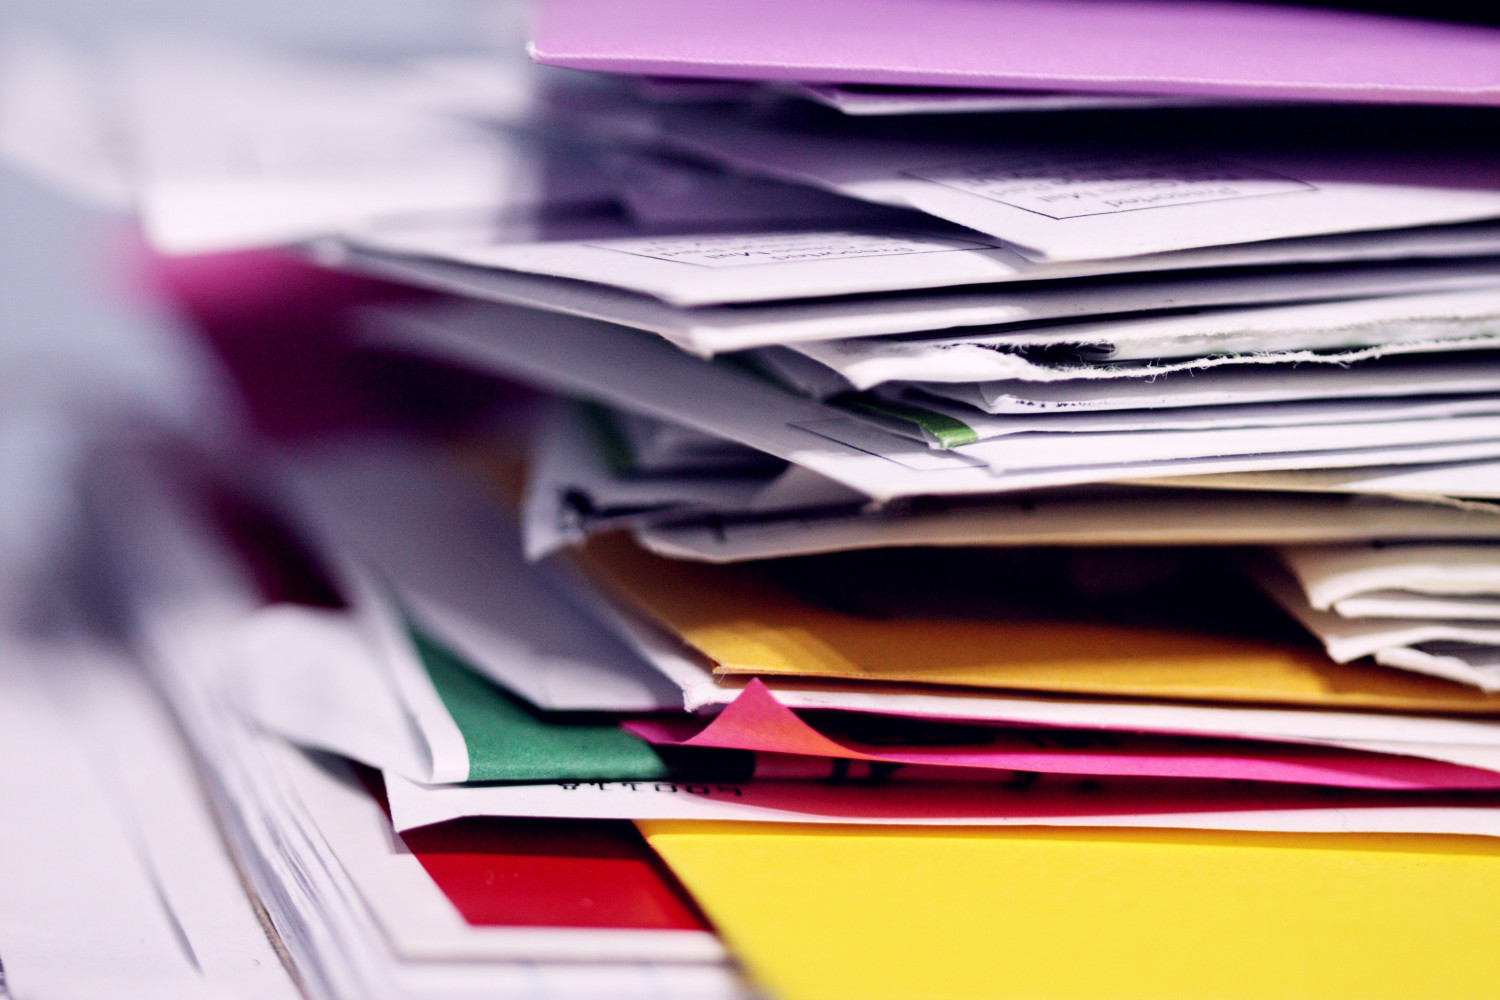 Image of a stack of papers and files